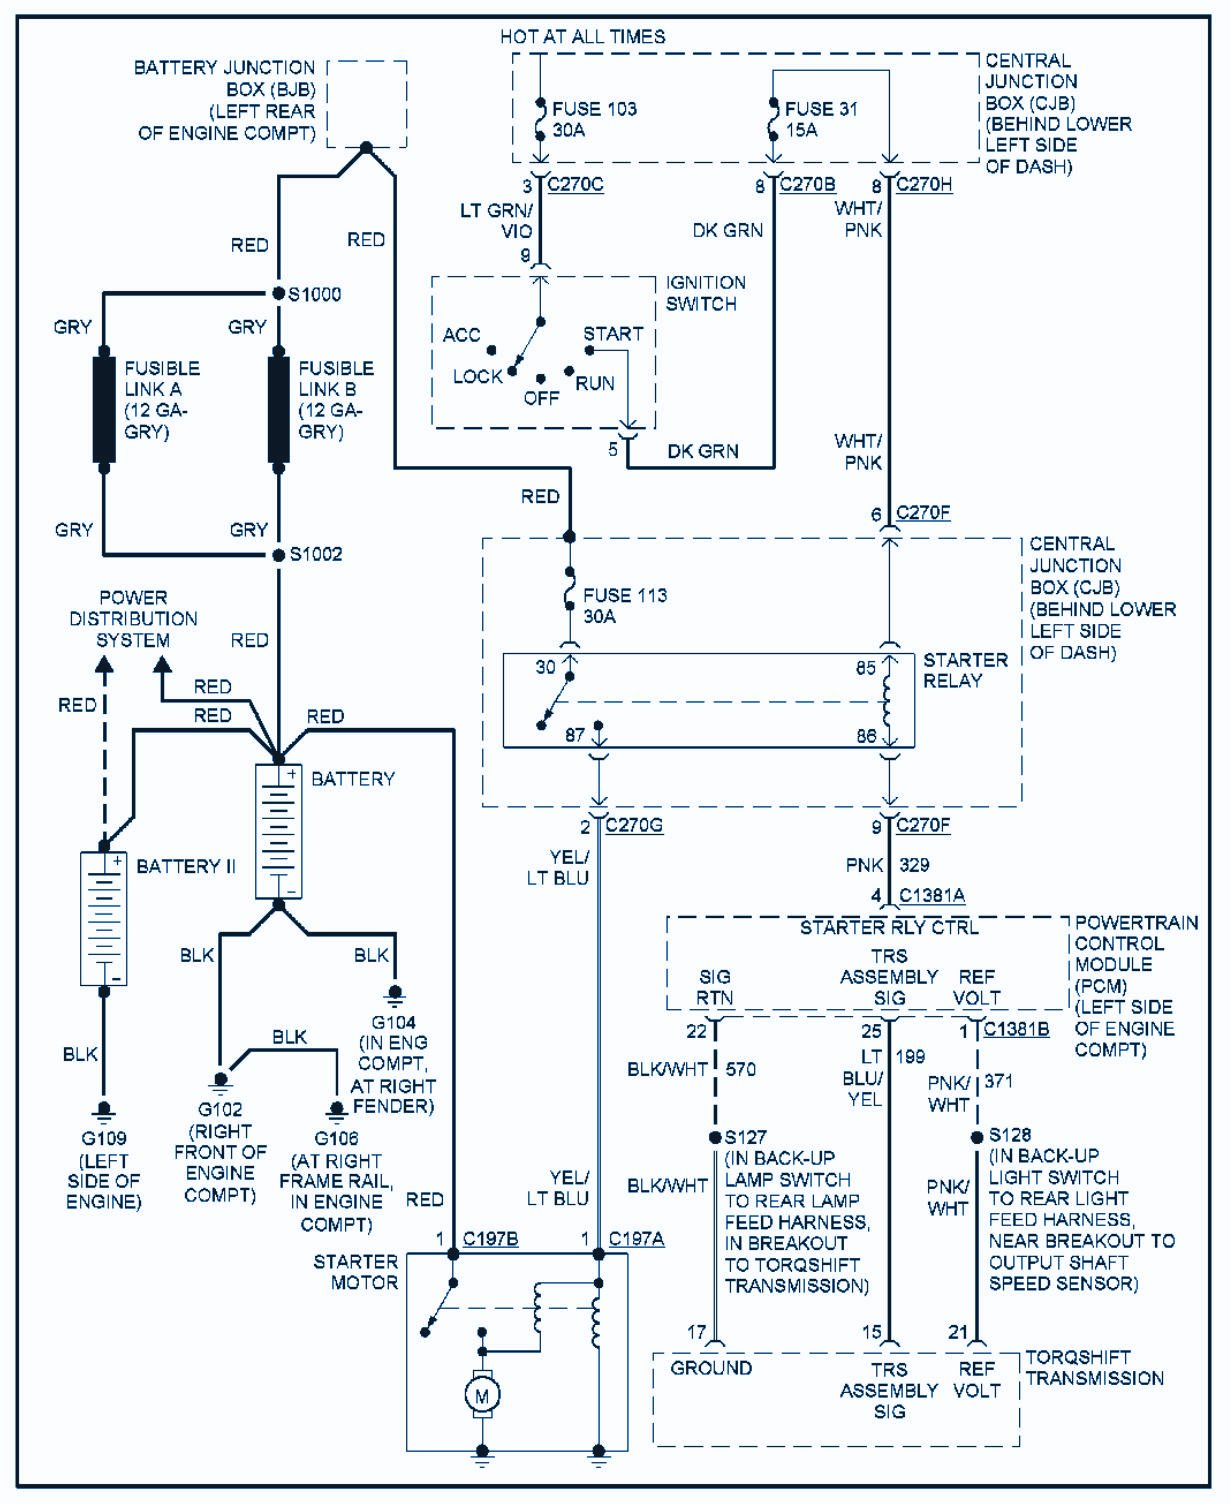 2008 F350 4x4 Wiring Diagram Anything Diagrams I Need A For Ford Trailer Arbortech Us Rh F 350